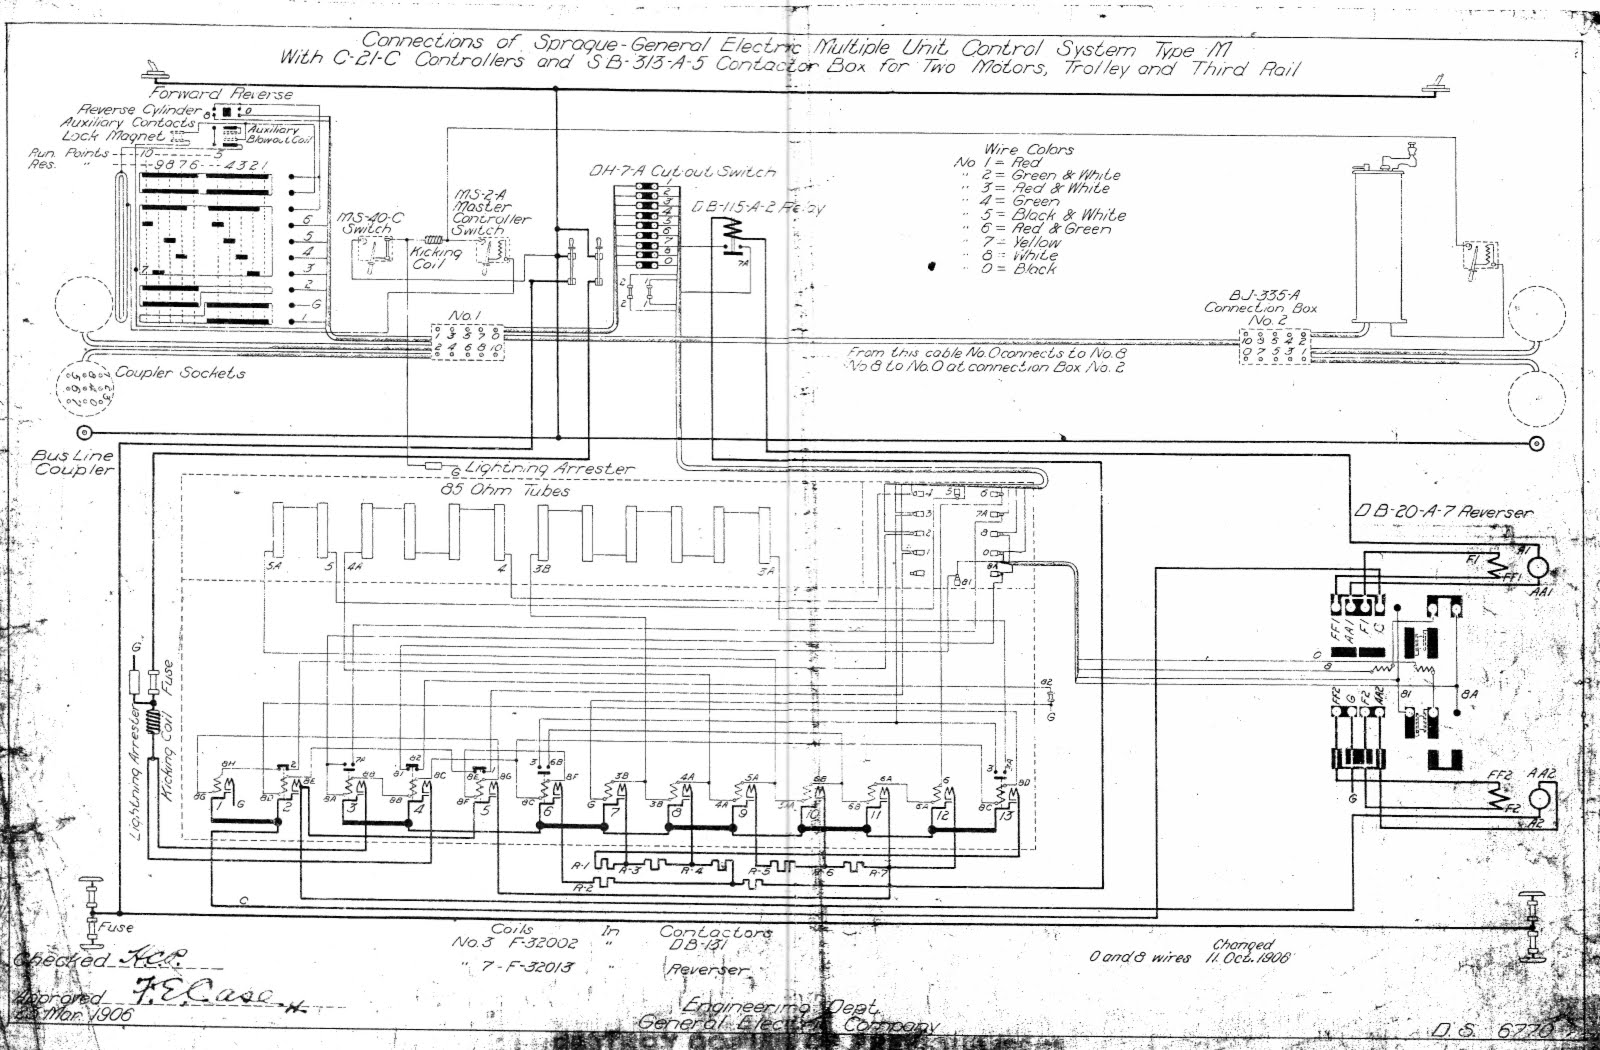 Electrical Wiring Mercedes Benz Radio Diagram Land 730n